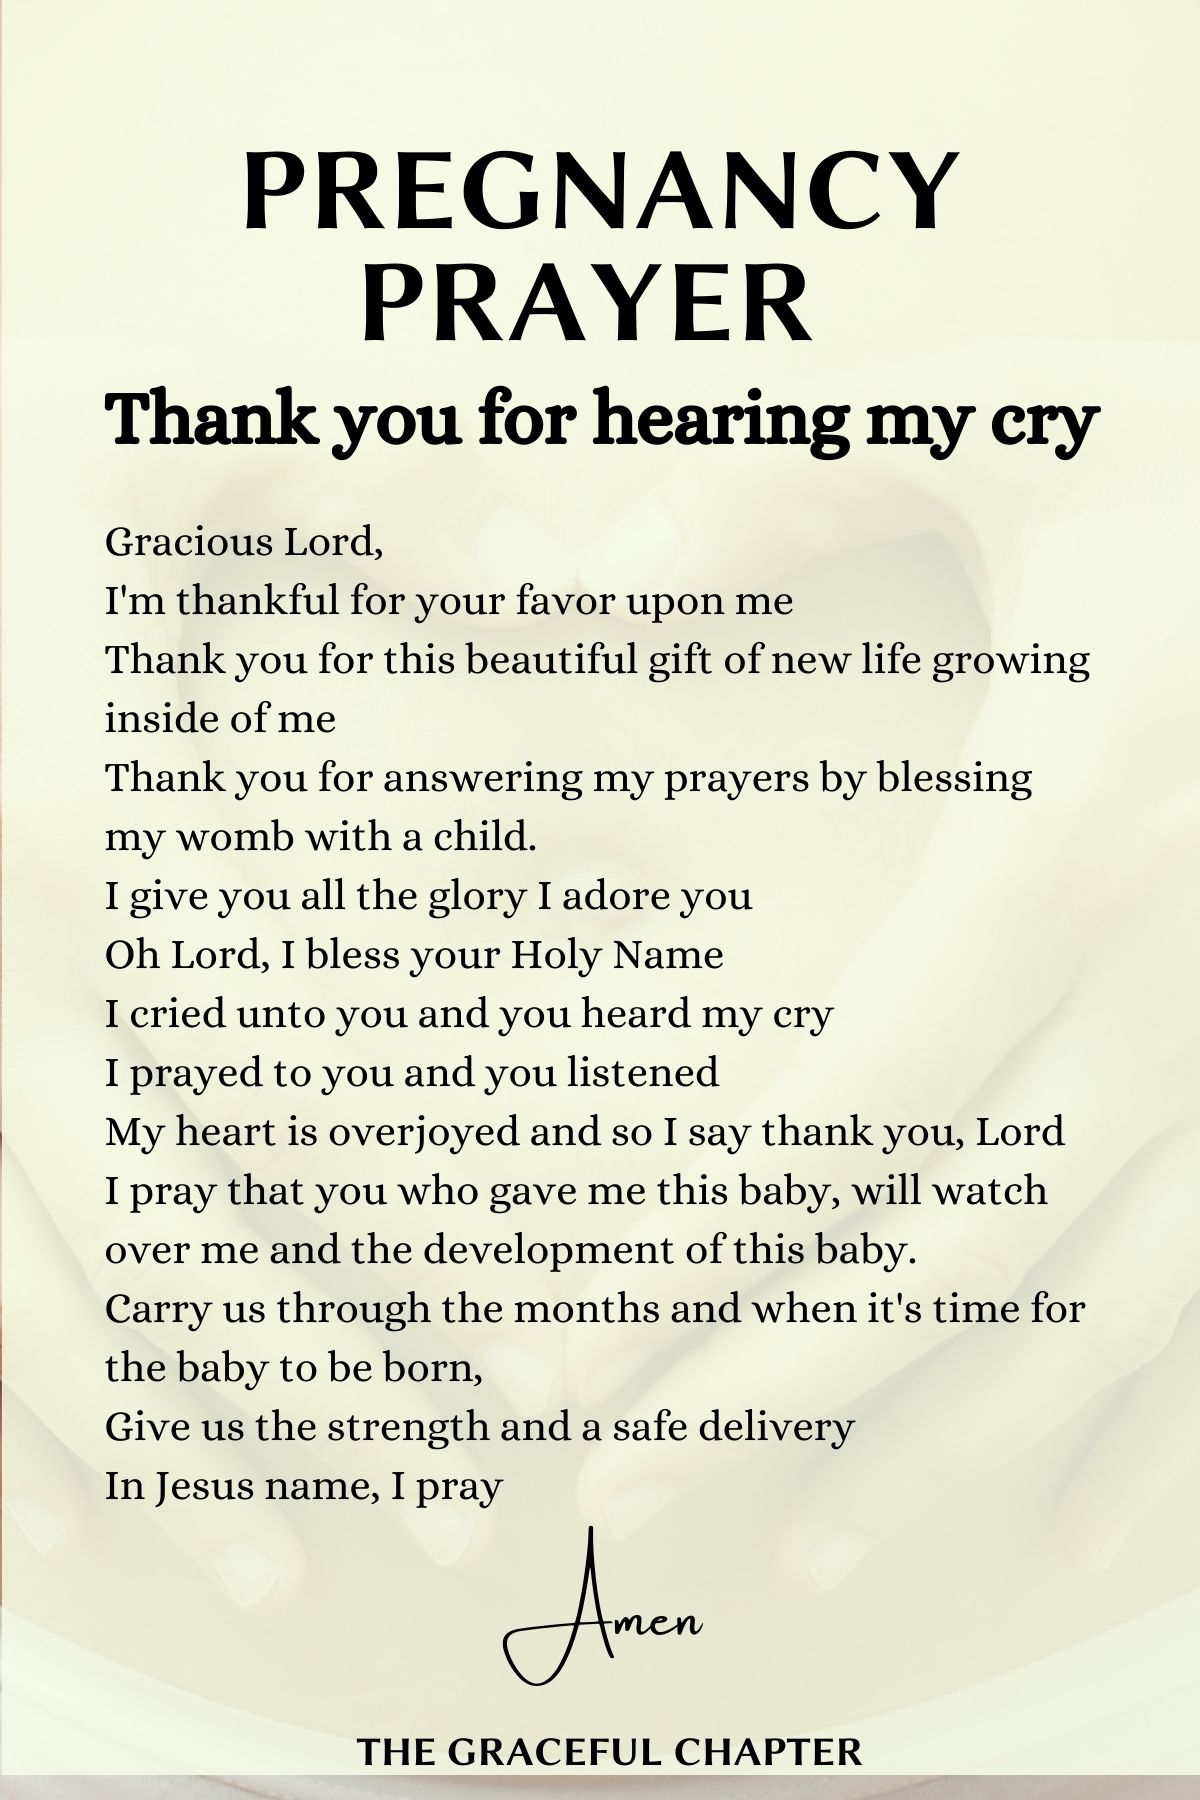 Pregnancy prayer - Thank you for hearing my cry